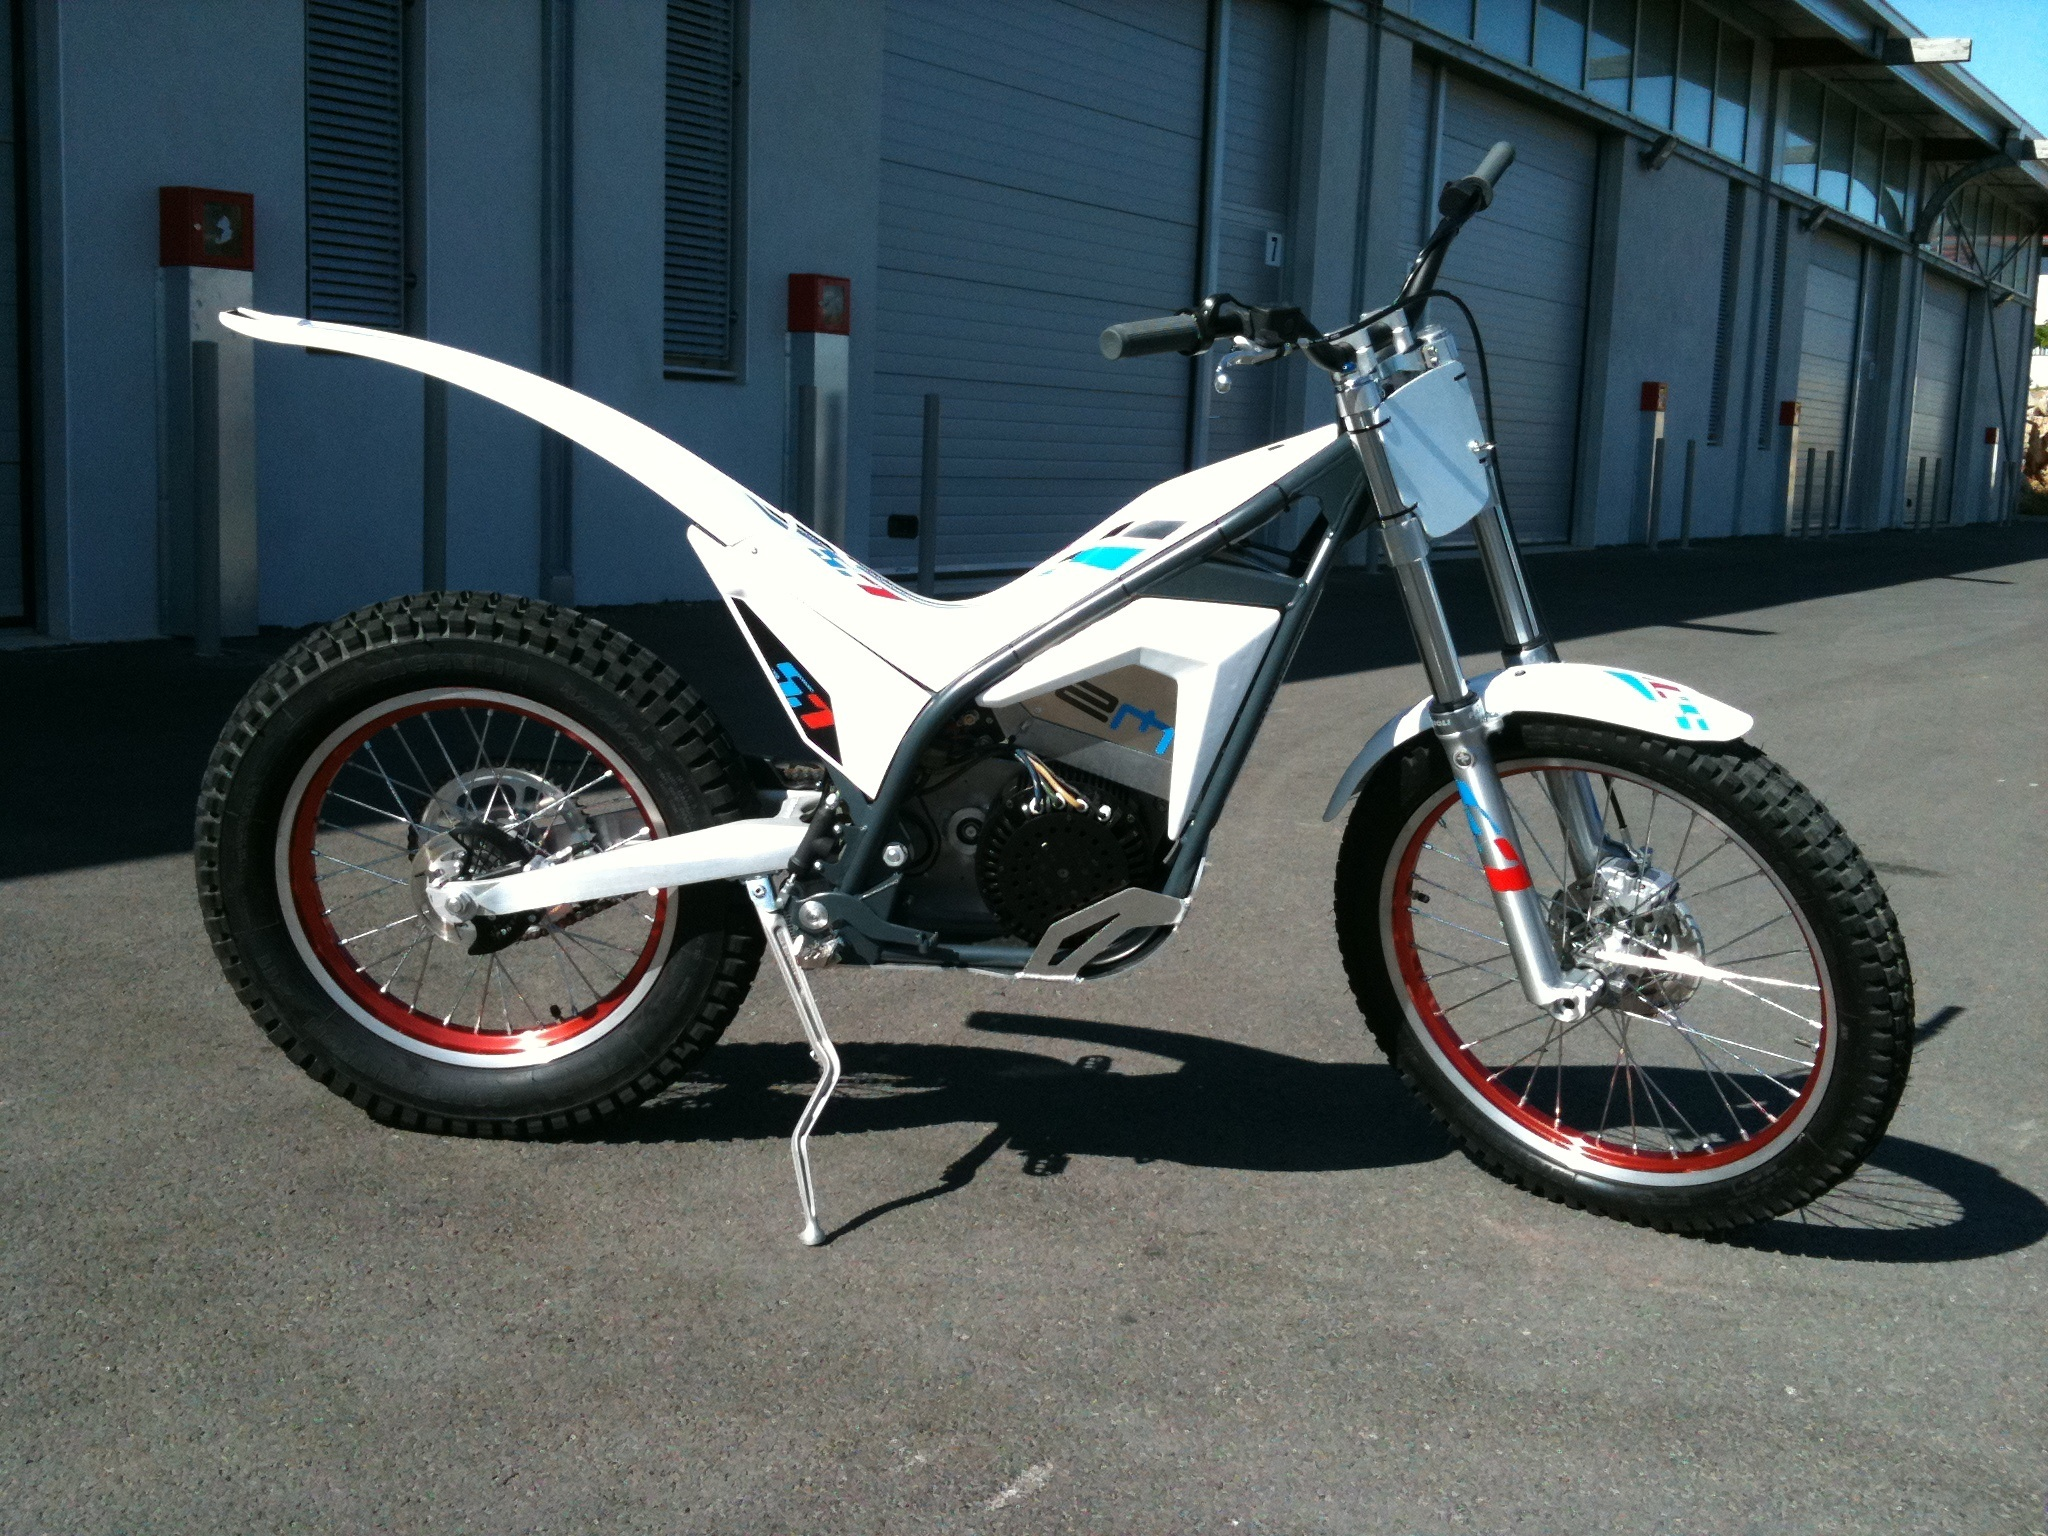 Electric Motion Em 5 7 Electric Trials Bike Christophe Bruand